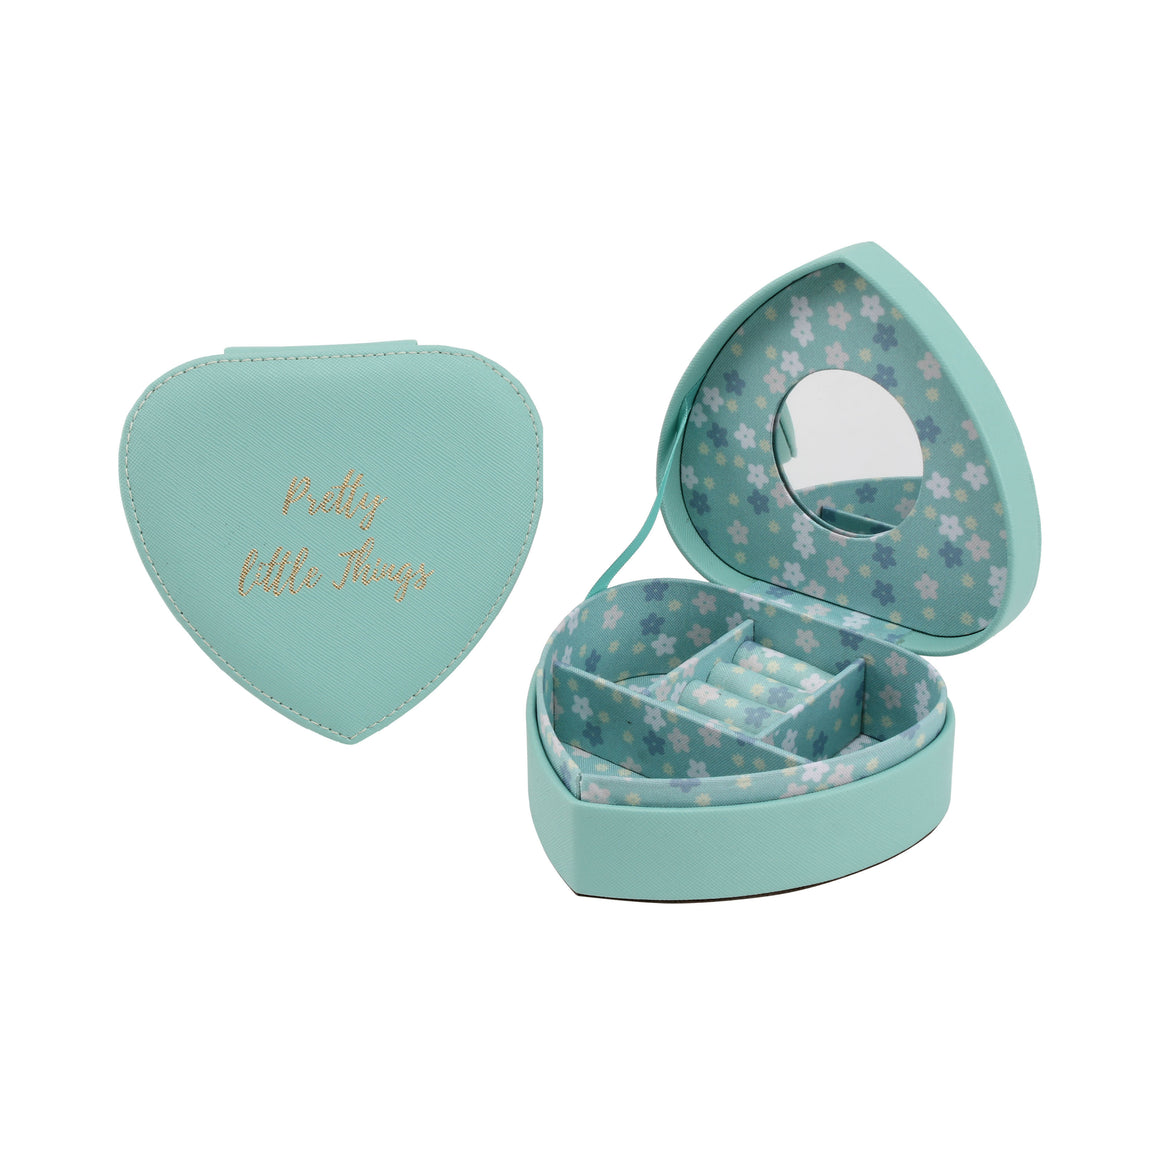 Willow & Rose 'Pretty Little Things' Teal Heart Jewellery Box